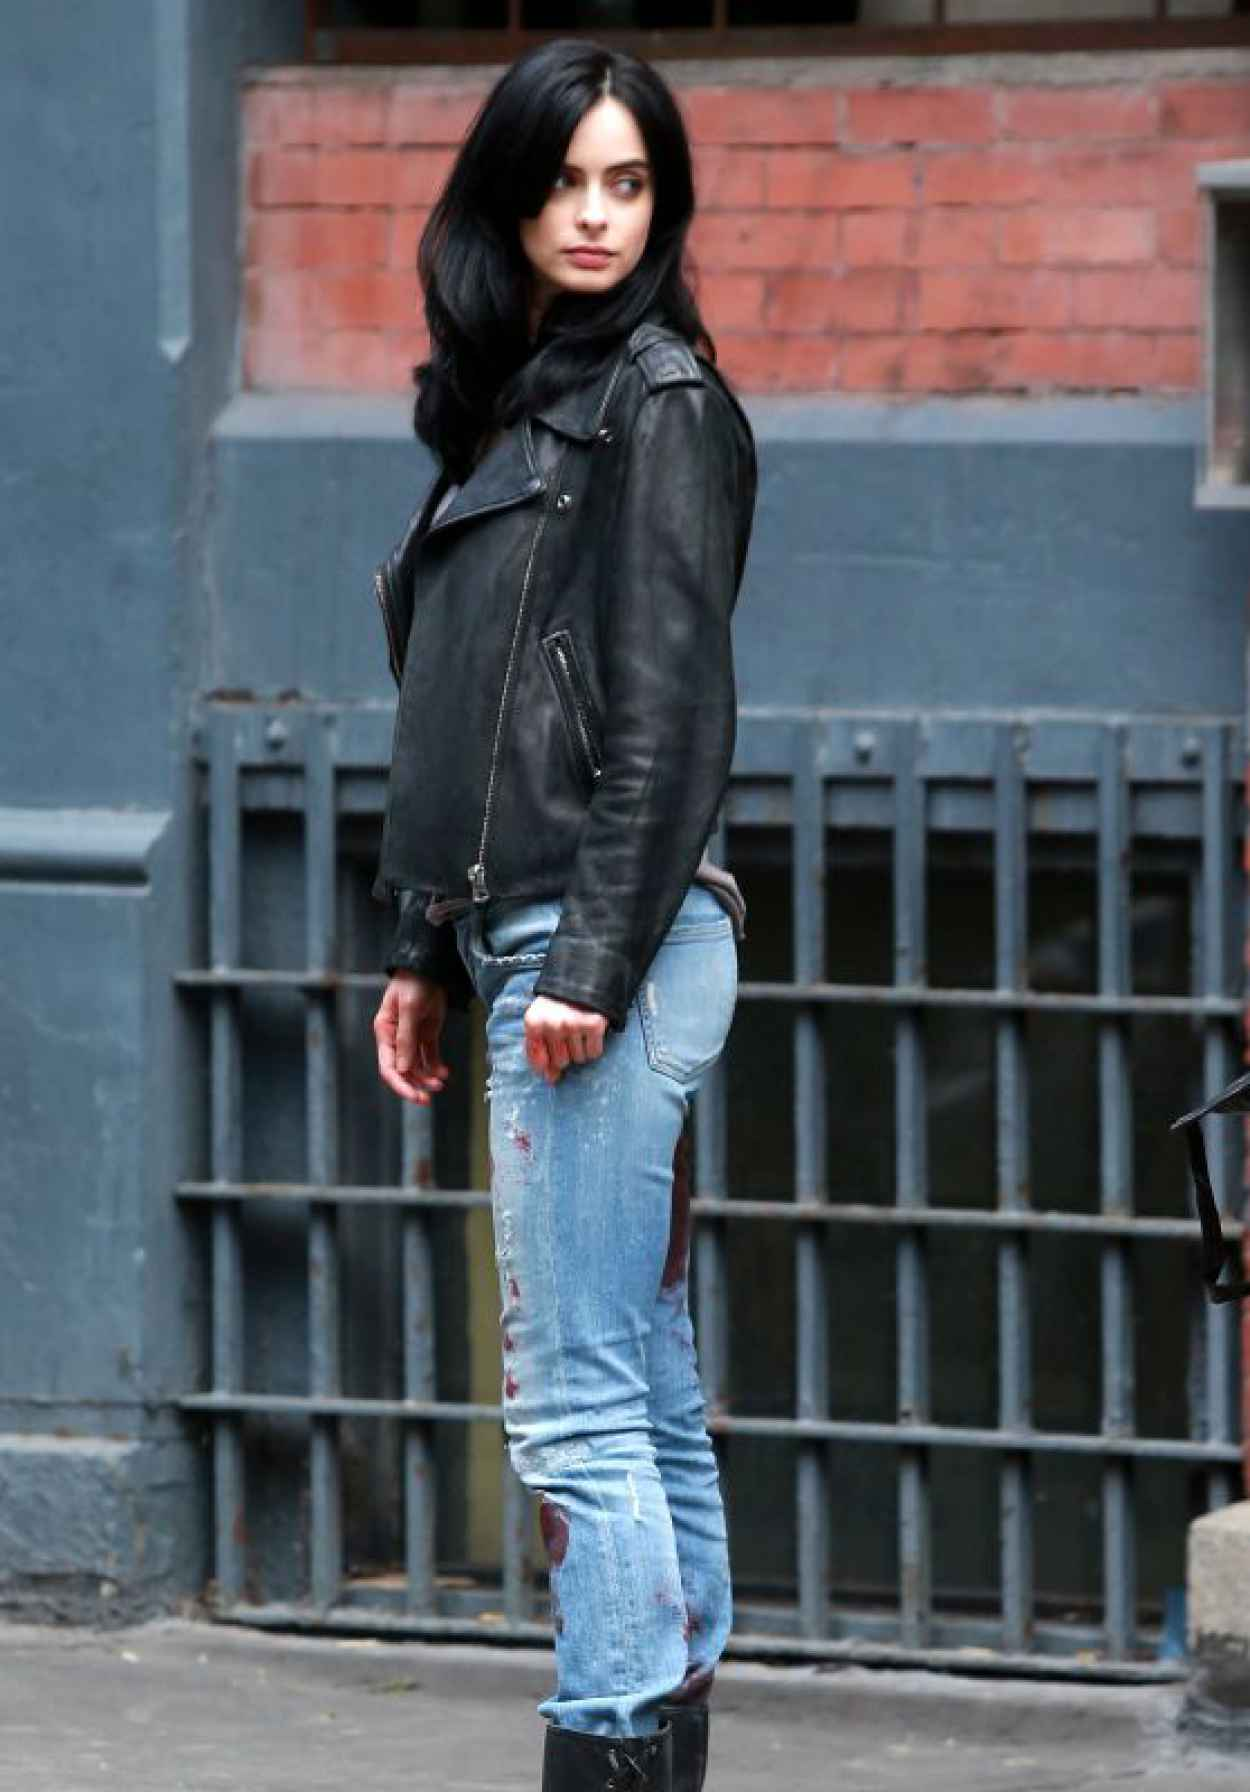 Krysten Ritter Booty in Bloody Jeans - A.K.A. Jessica Jones Set in NYC, July 2015-1